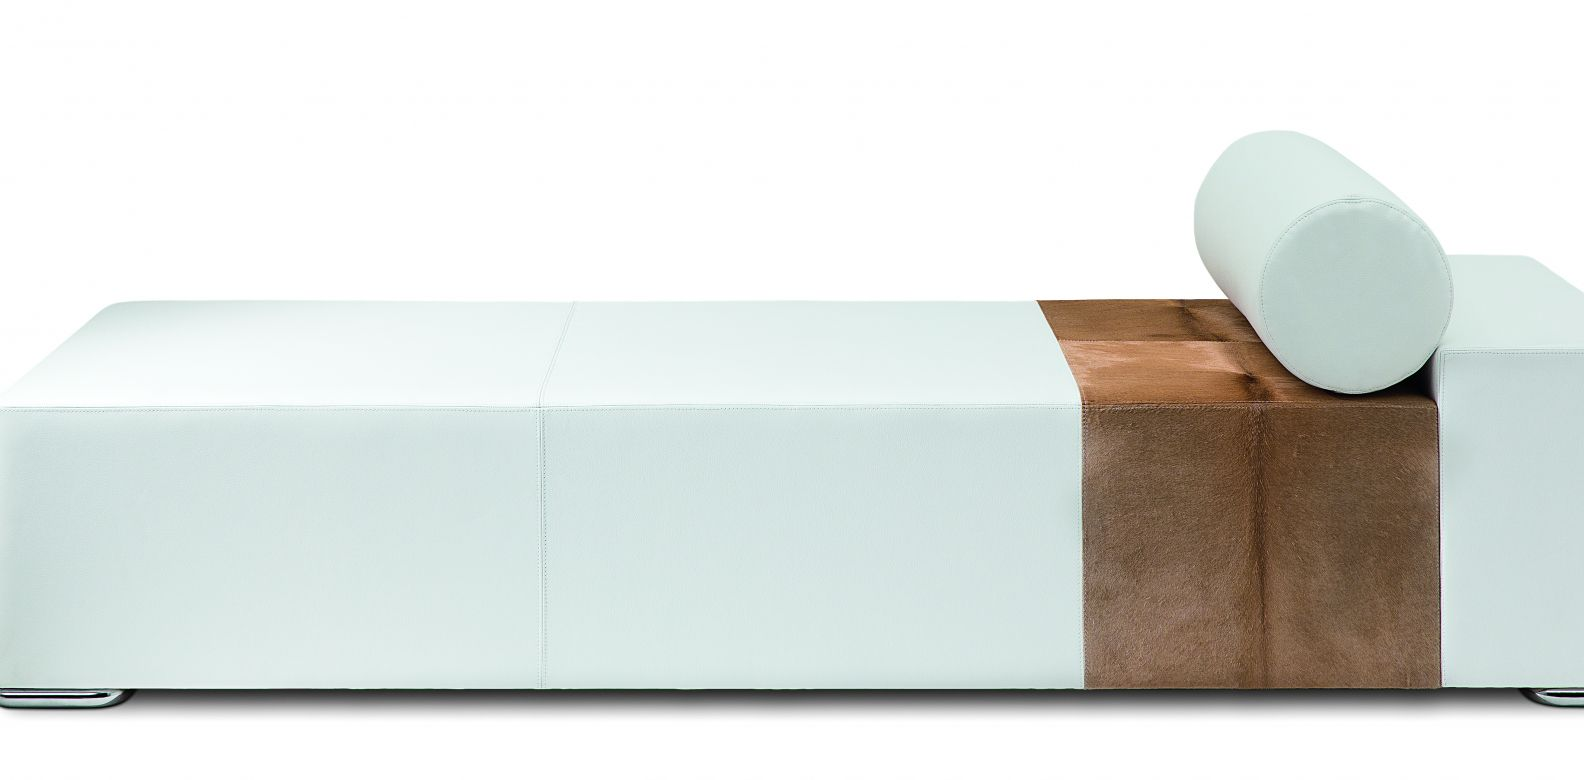 Austral Daybed by Christian Liaigre: Interior design firm Christian Liaigre has created sophisticated and sumptuous homes for luminaries including Karl Lagerfeld, Calvin Klein and François Nars. This white leather daybed has been one of the studio's most popular items ever since it was released in 2013. (Image: Courtesy of Christian Liaigre)